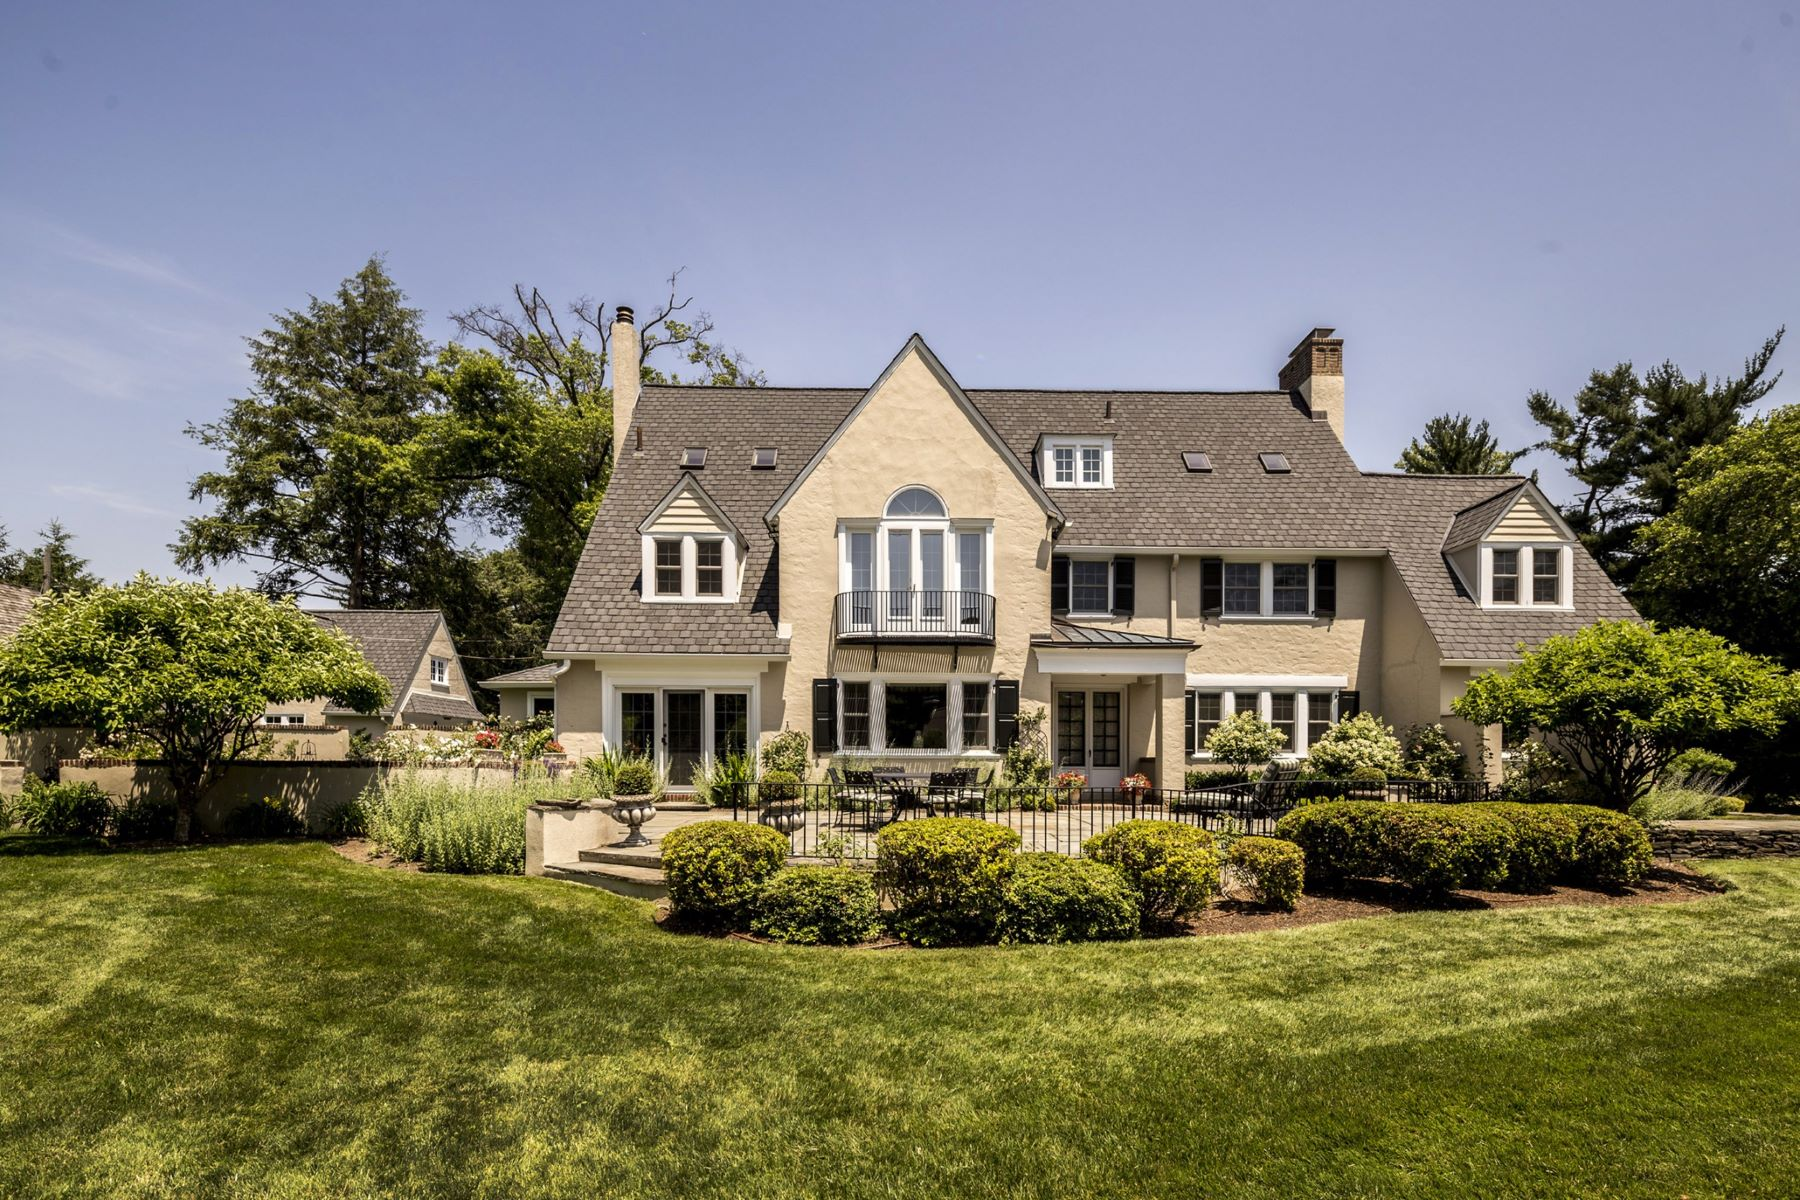 for Sale at Classic Main Line Manor House 500 GLENVIEW RD Bryn Mawr, Pennsylvania, 19010 United States